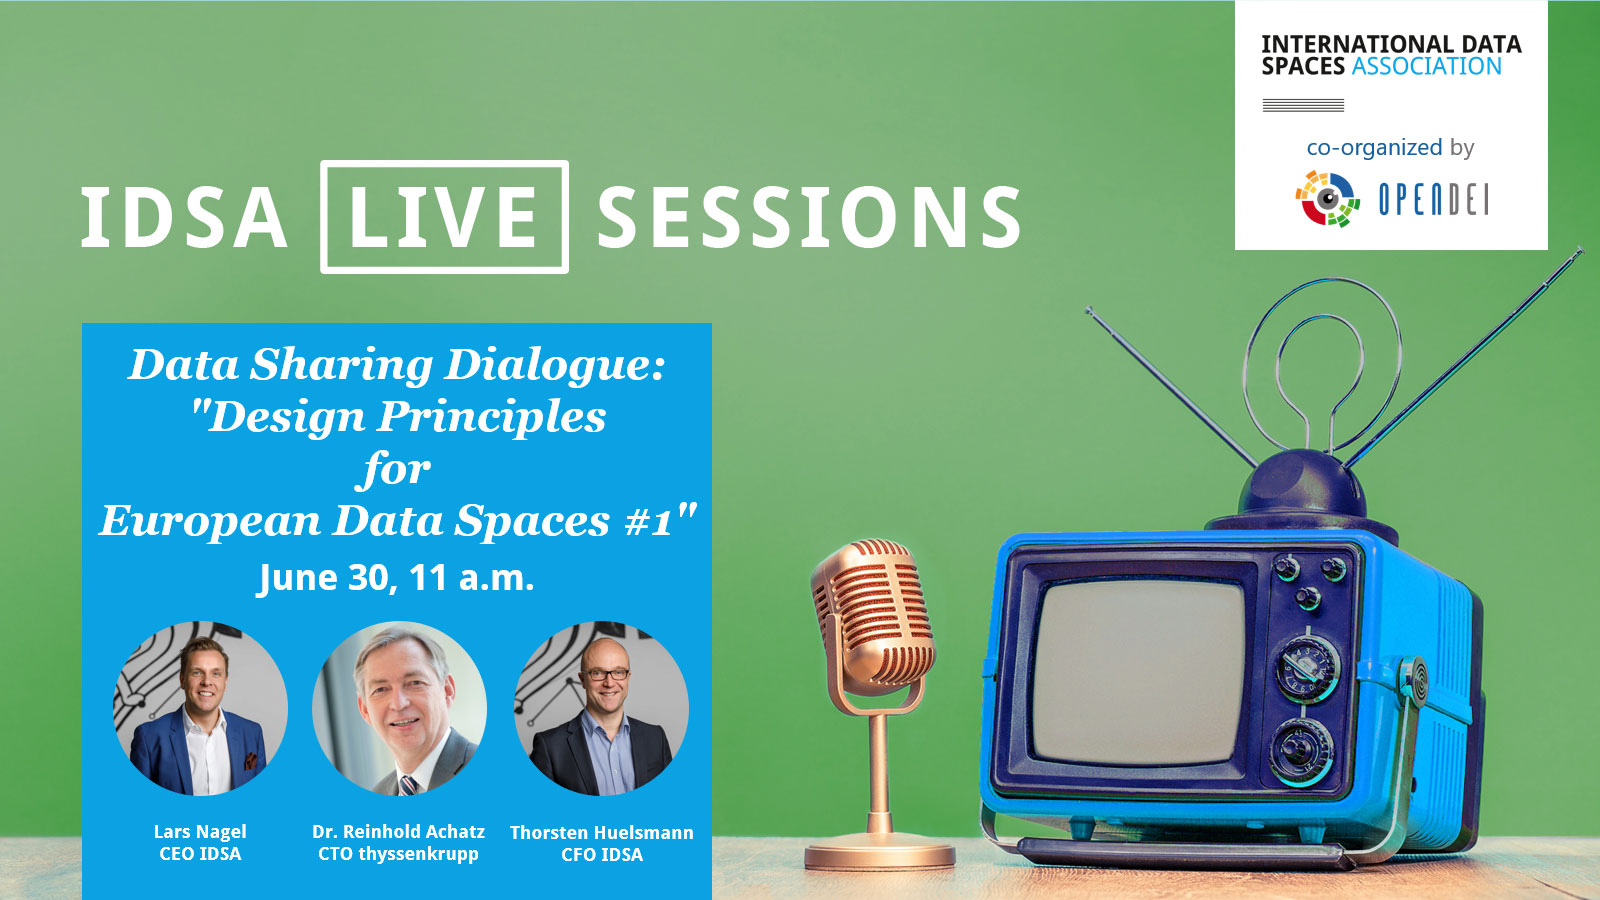 Data Spaces Dialogue: 'Design Principles for European Data Spaces' #1